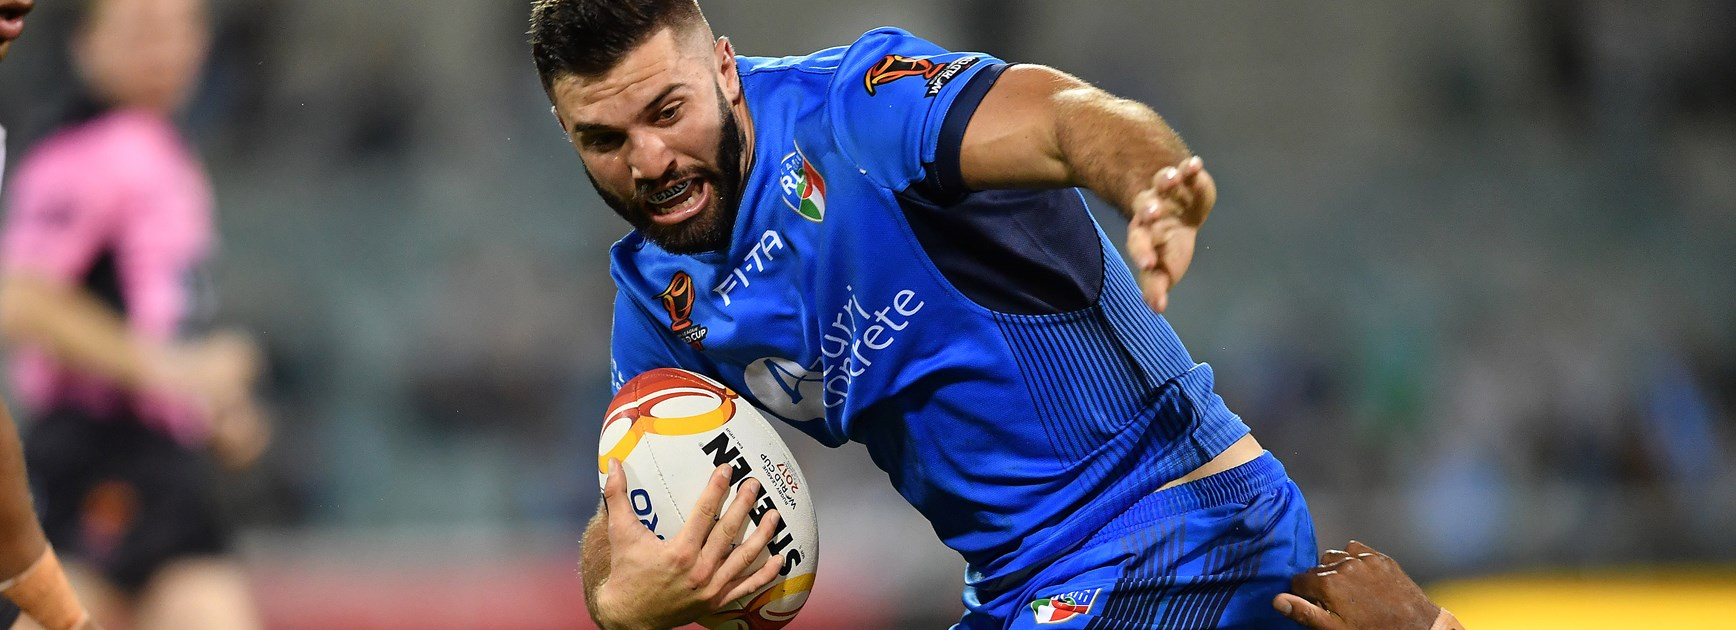 James Tedesco in action for Italy during the World Cup.